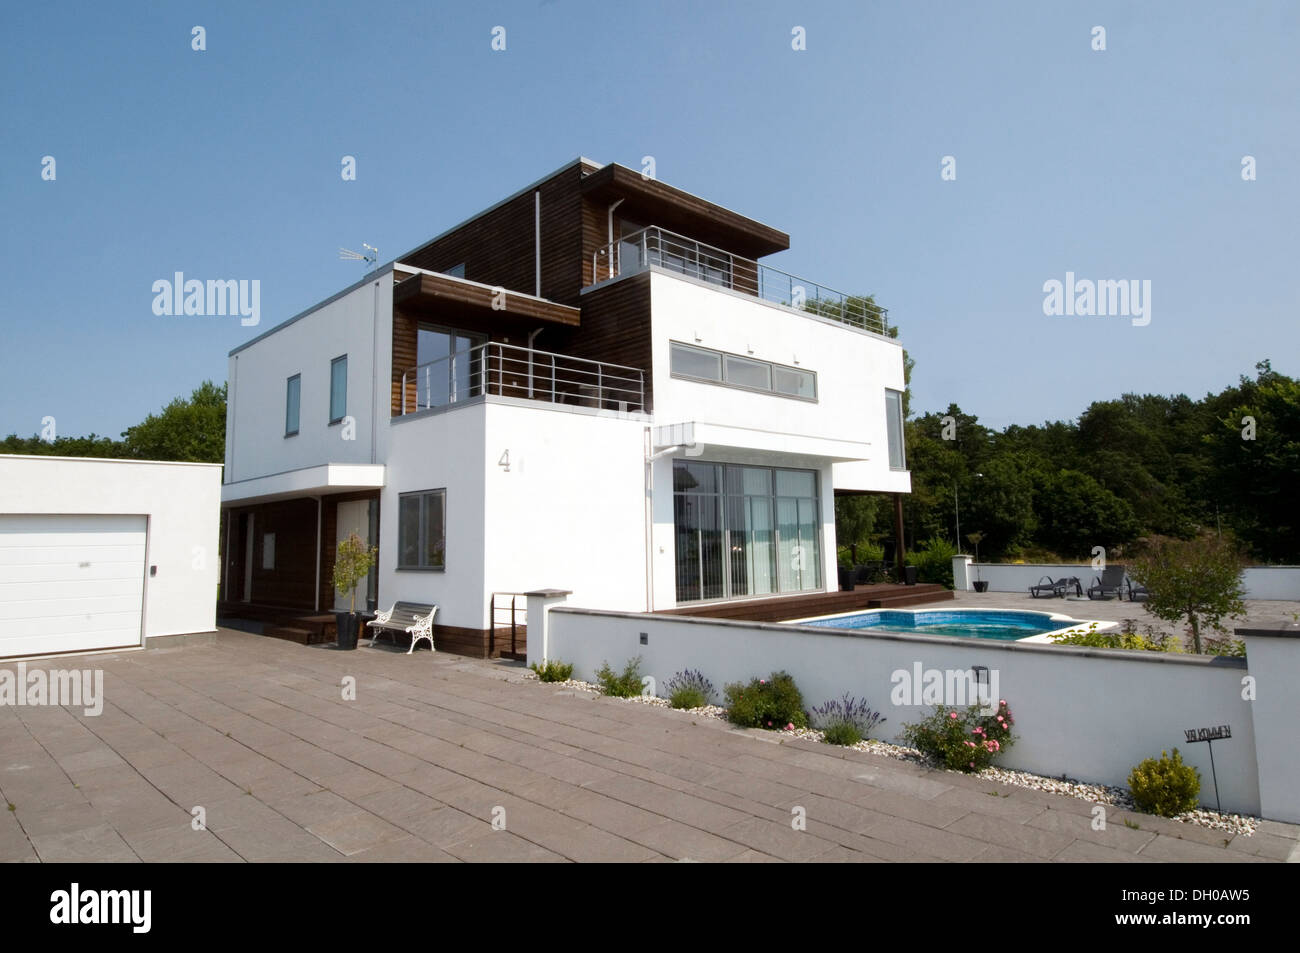 Stock photo modern swedish sweden house houses home home contemporary minimalist scandinavian eco friendly ecofriendly efficient efficiency